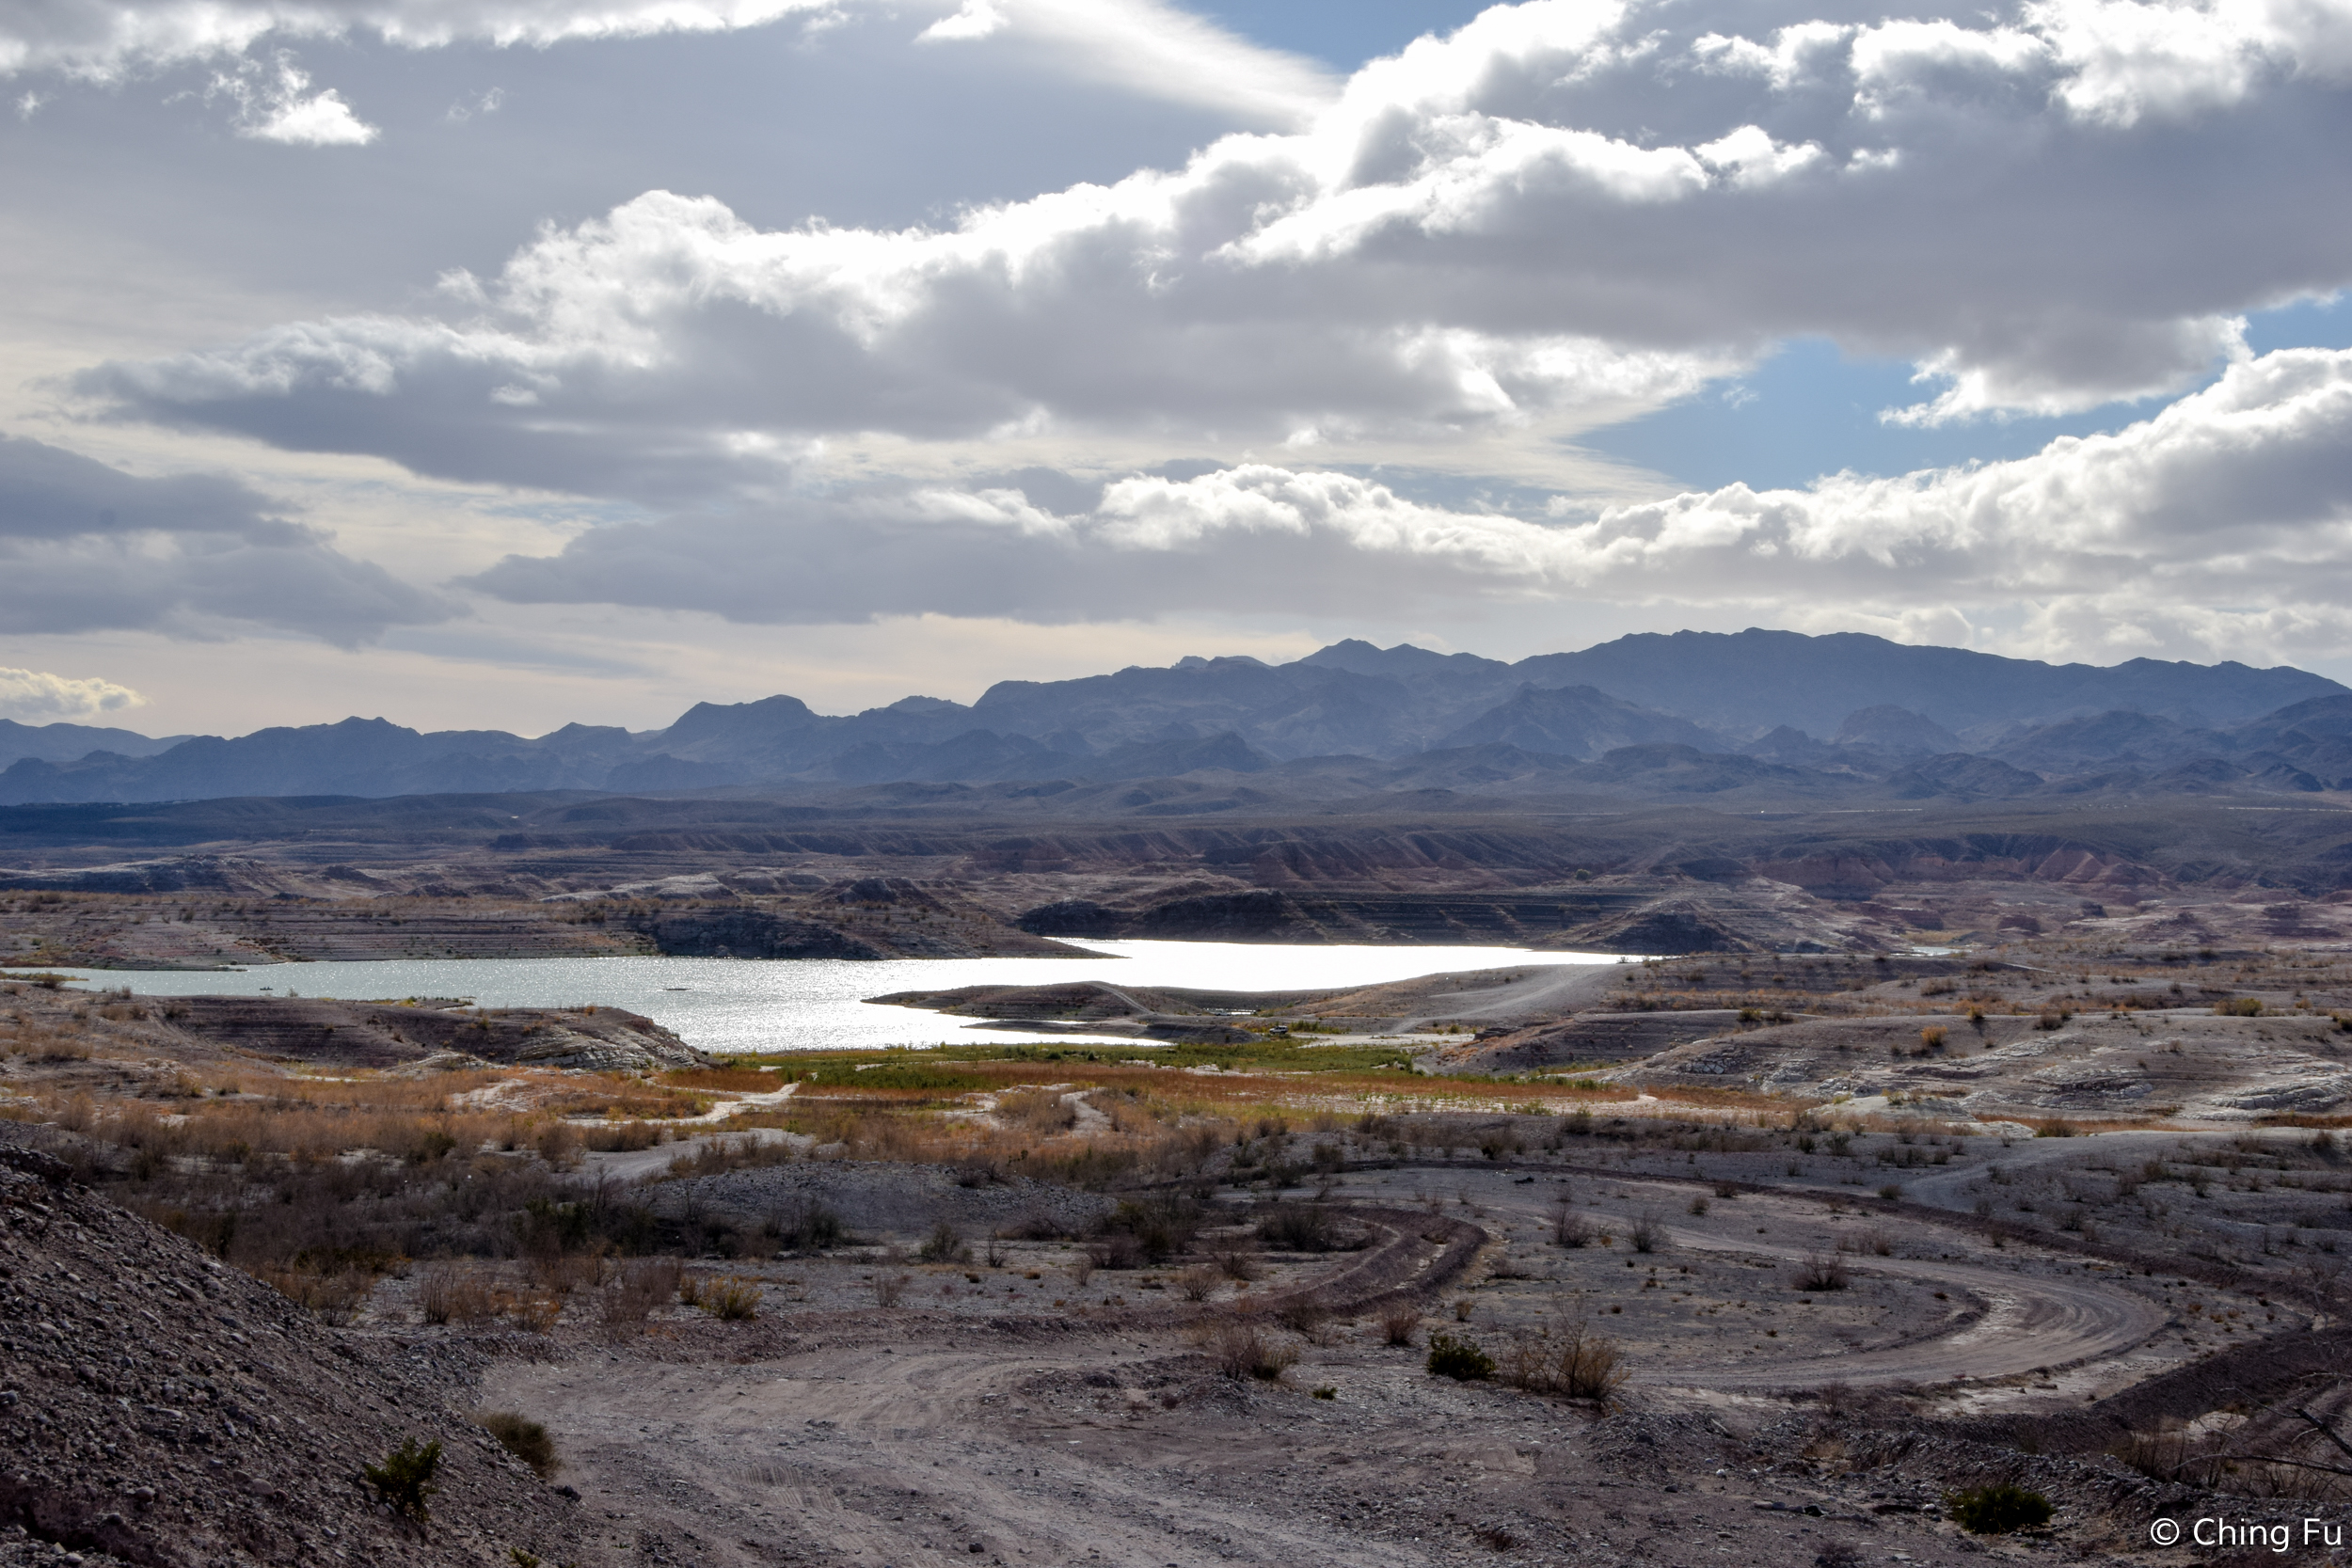 View of Lake Mead from the top of the hill at 8 Mile.